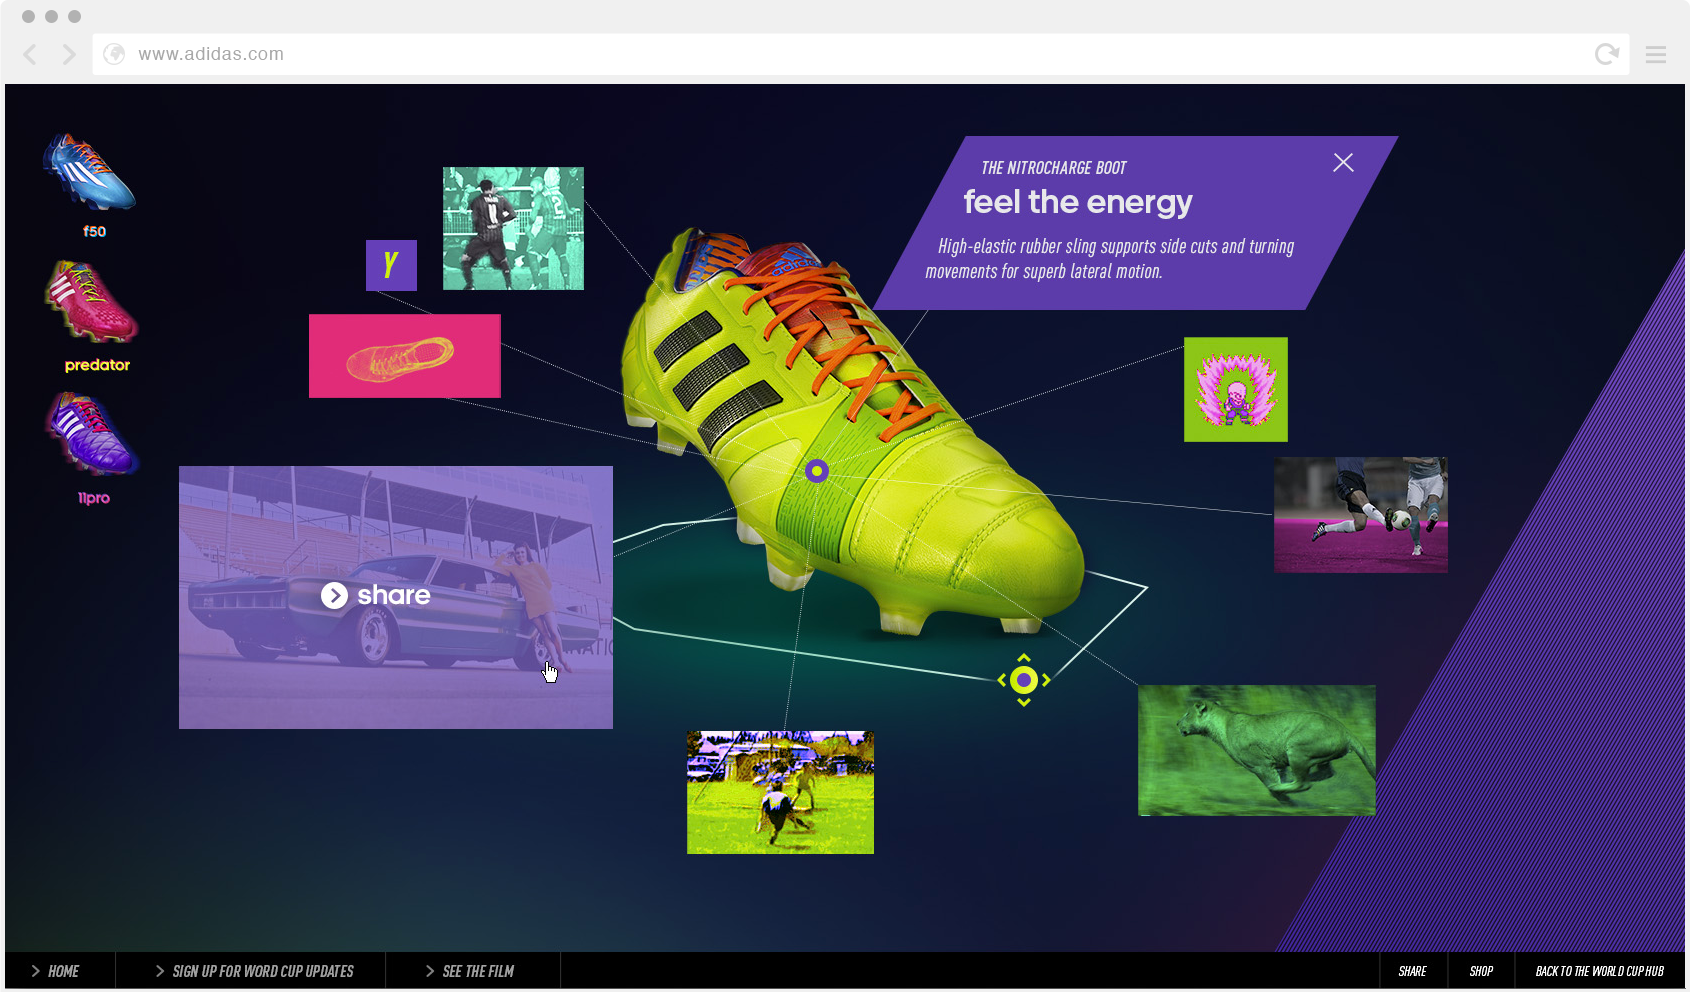 adidas_0013_Layer-Comp-15.png